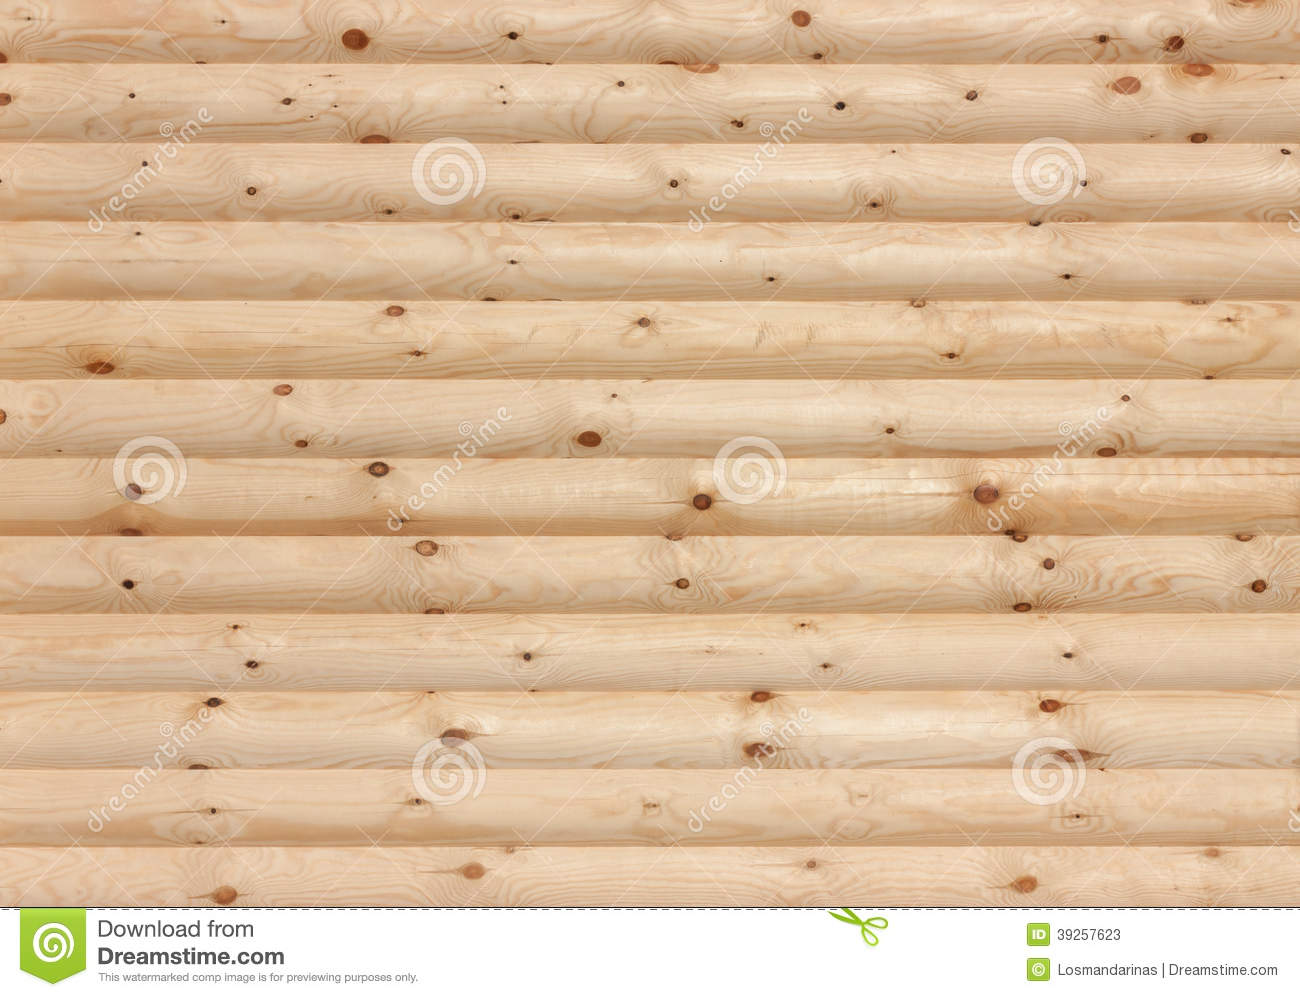 texture en bois de fond de mur de rondins photo stock image 39257623. Black Bedroom Furniture Sets. Home Design Ideas